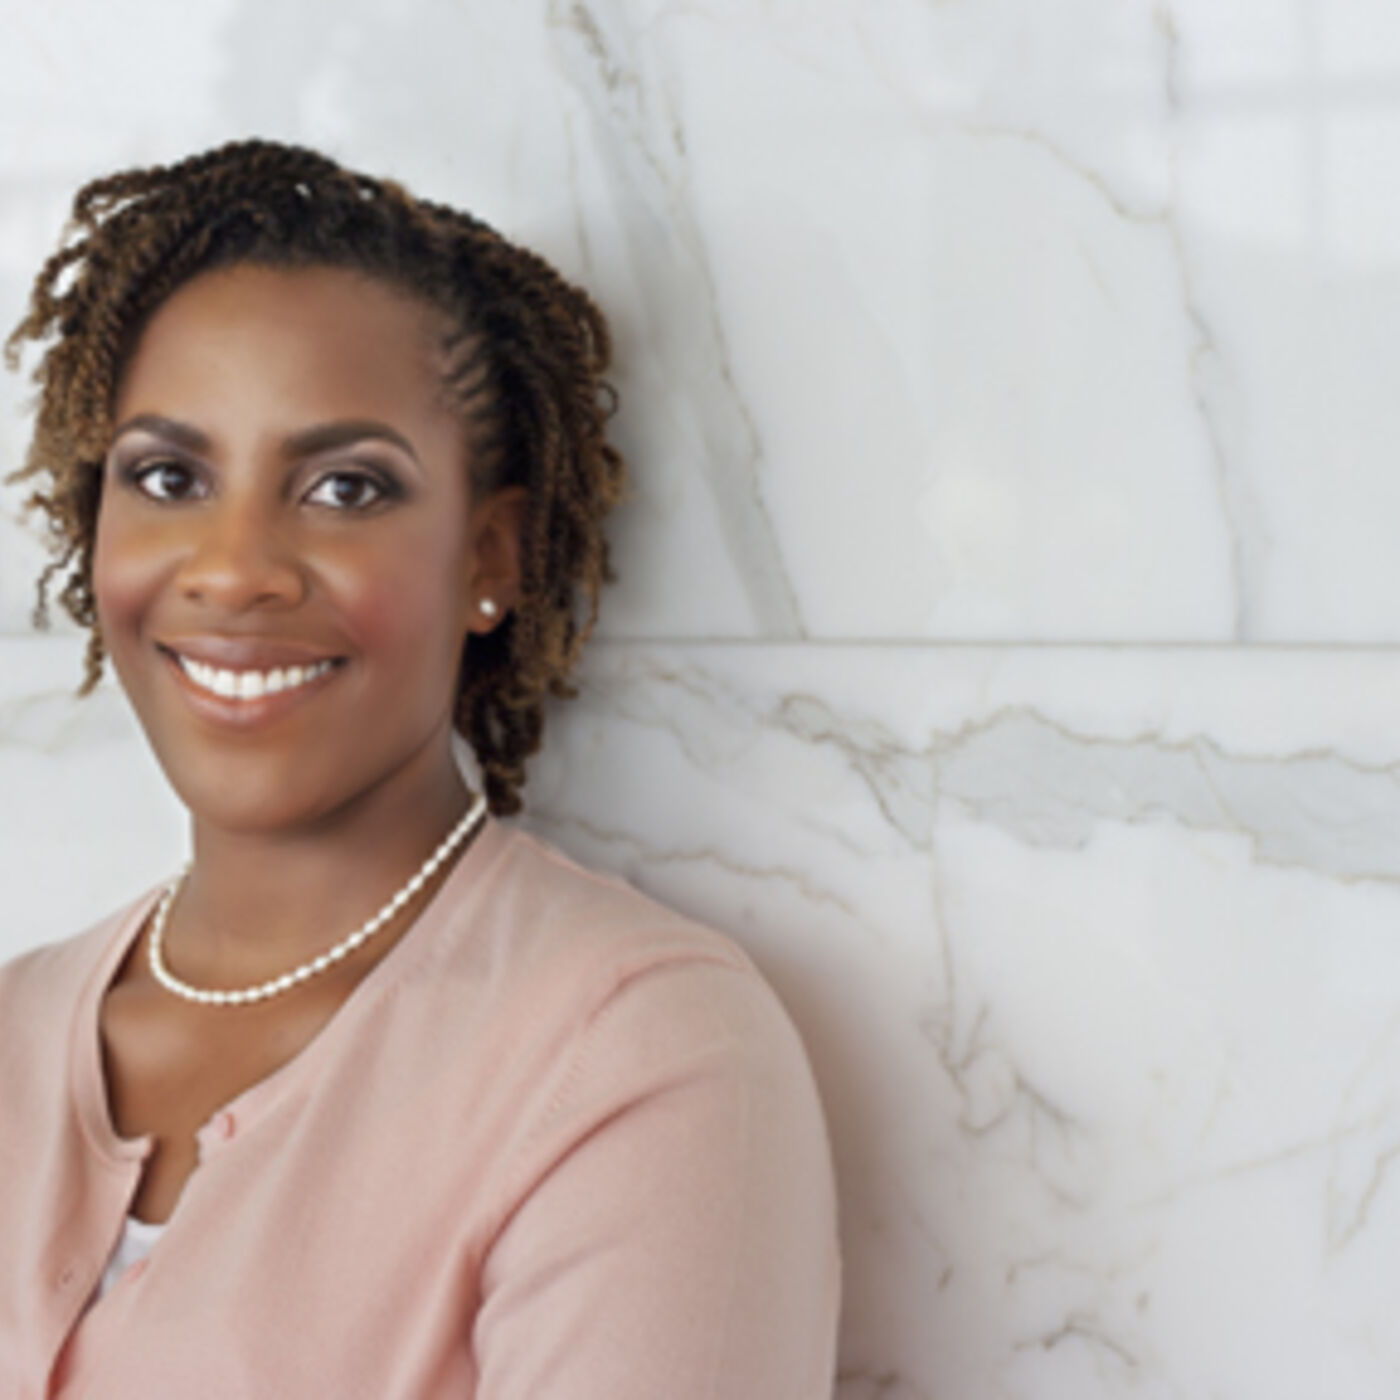 Episode 62: How Your Health is Determined By the Professional with Guest Tamara Melton